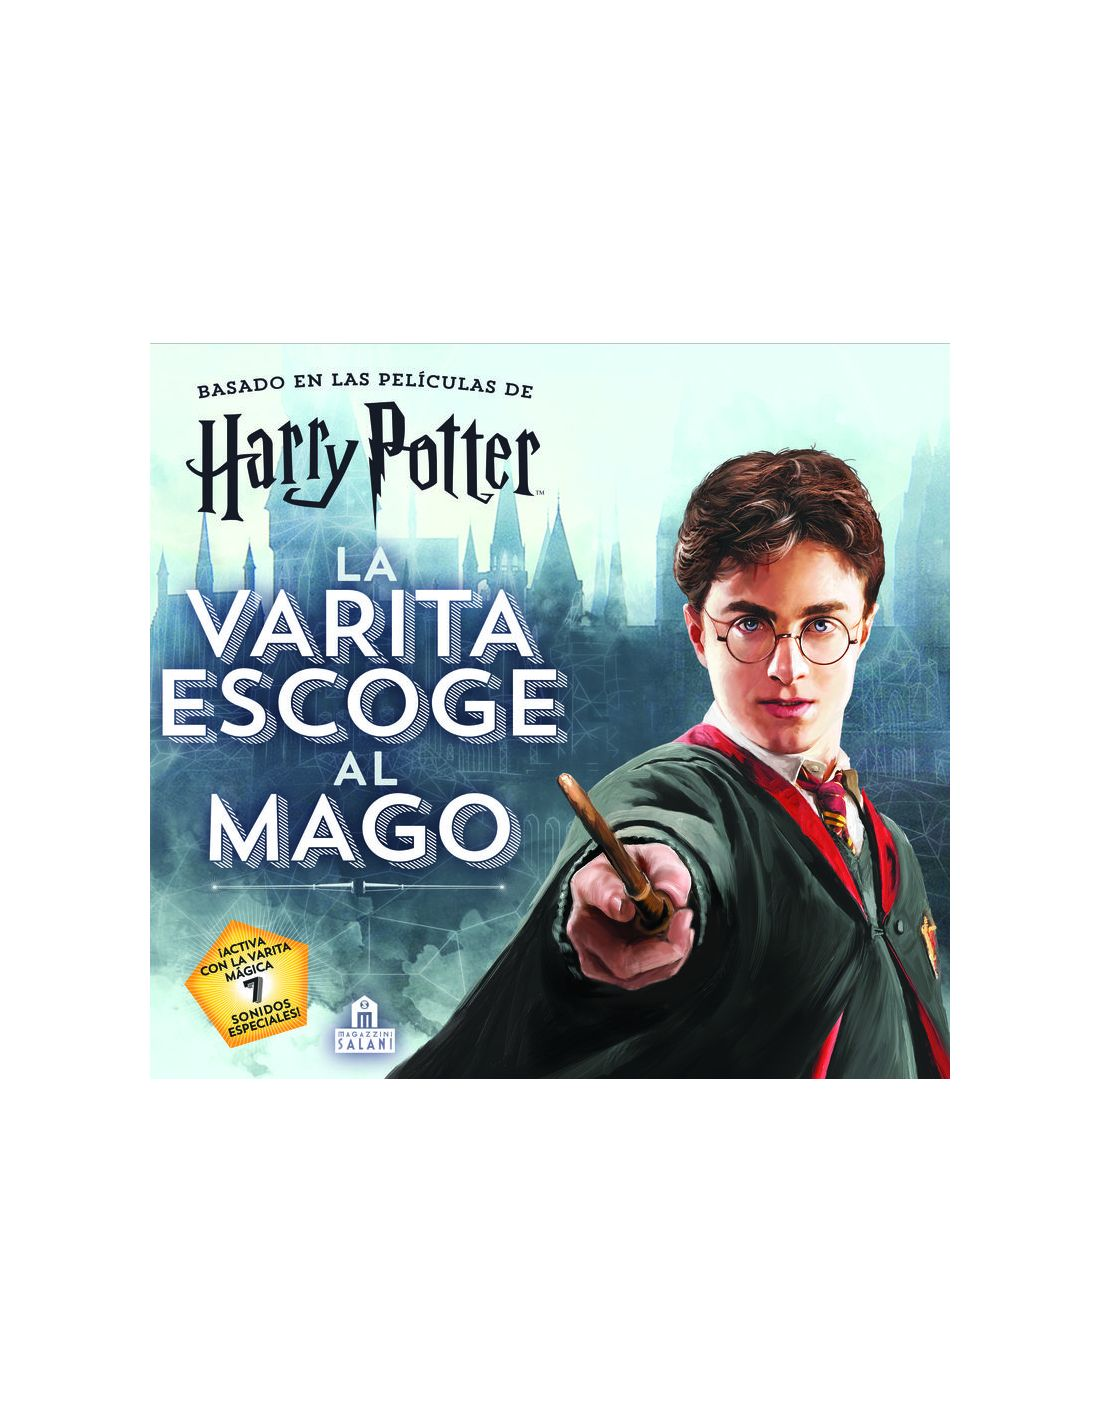 Harry Potter La Varita Escoge Al Mago